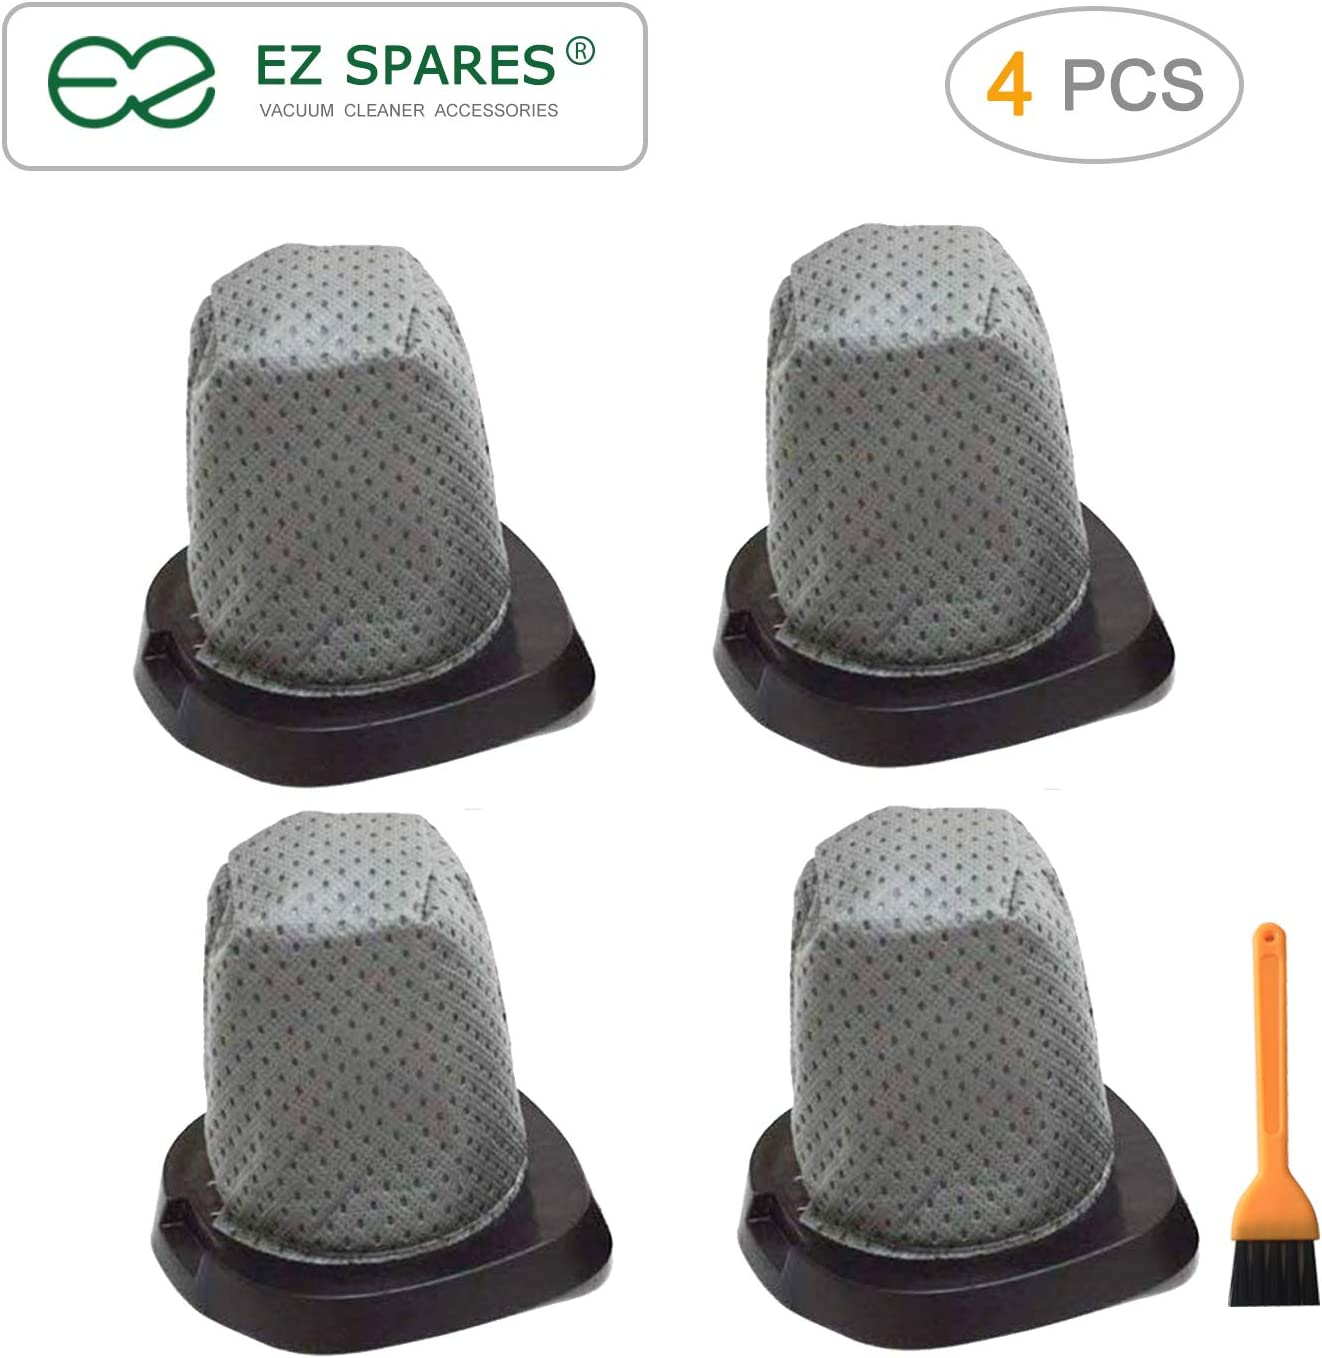 EZ SPARES Replacement for Vacuum Cleaner Filter 083405 Series Swift Stick Vacuum Style F25 F-25 Dust Cup Allergen Filter Hepa Attachment Kit Replace Part #'s 2SV1102000(4PCS)